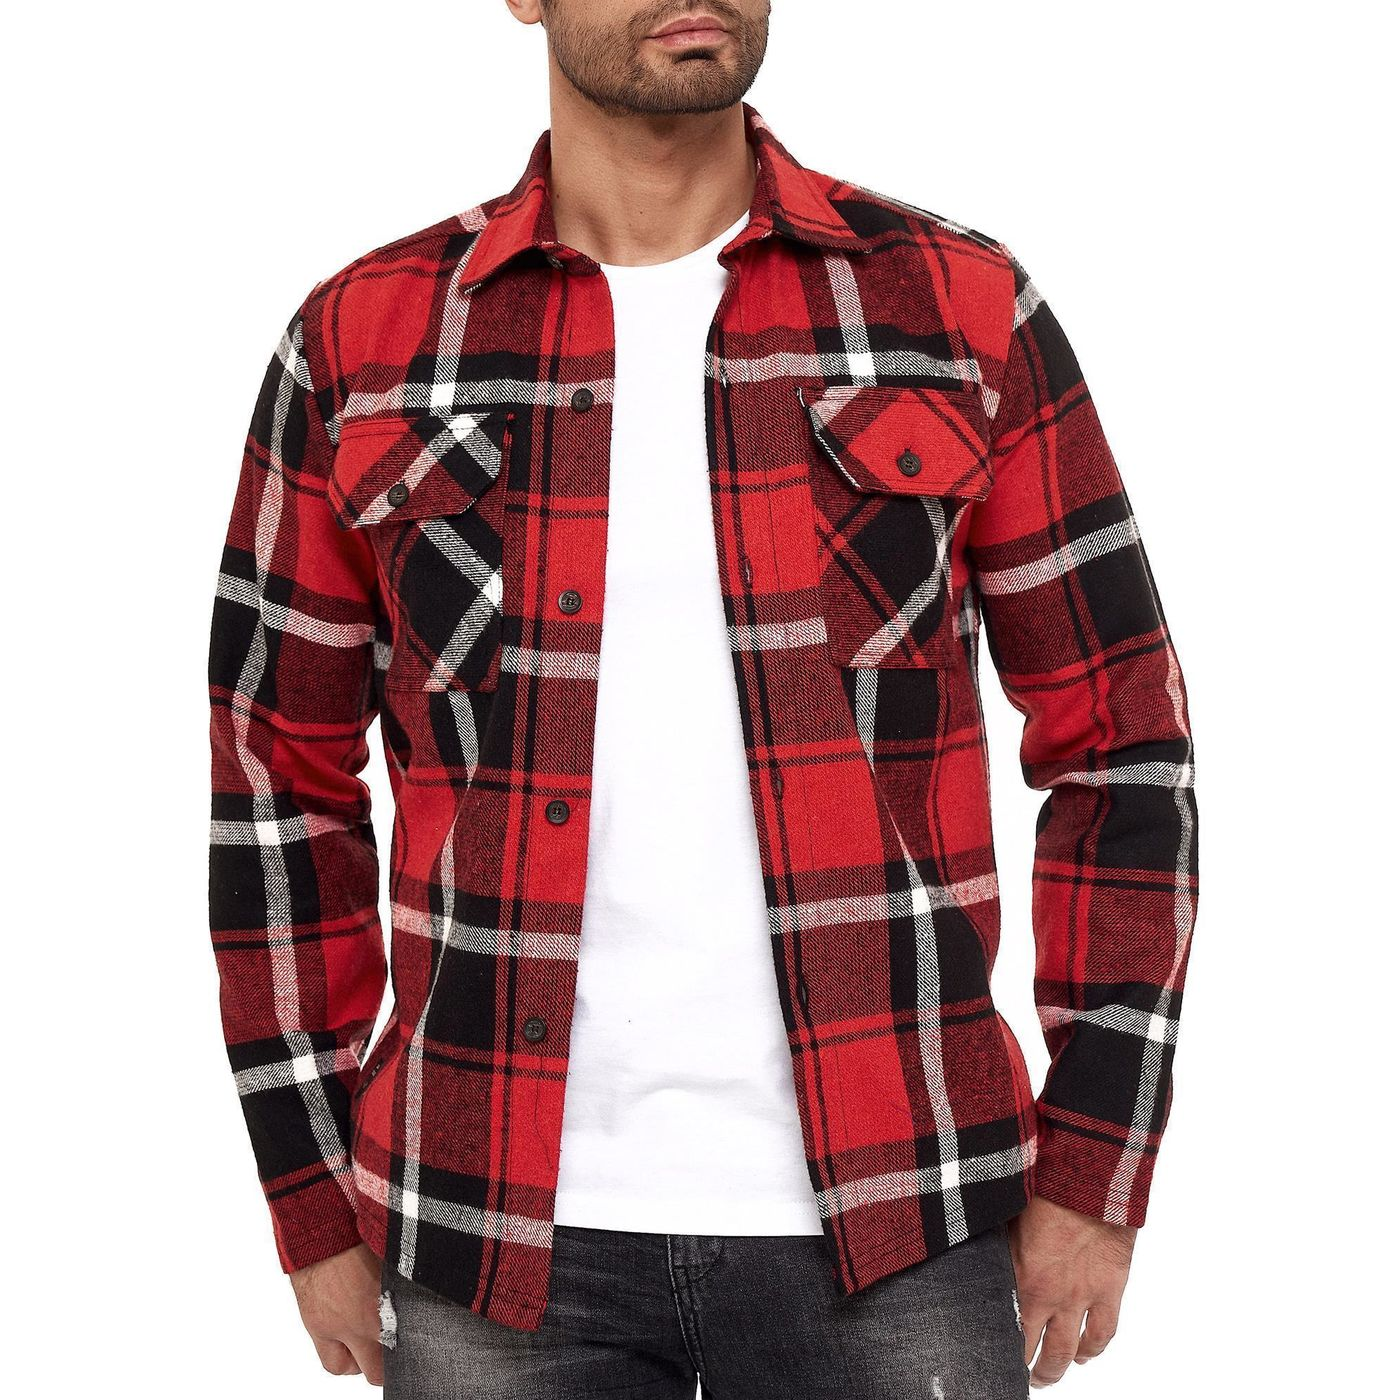 Mens Brushed Cotton Flannel Check Shirt Long Sleeve Plaid Top Blouse Lumberjack